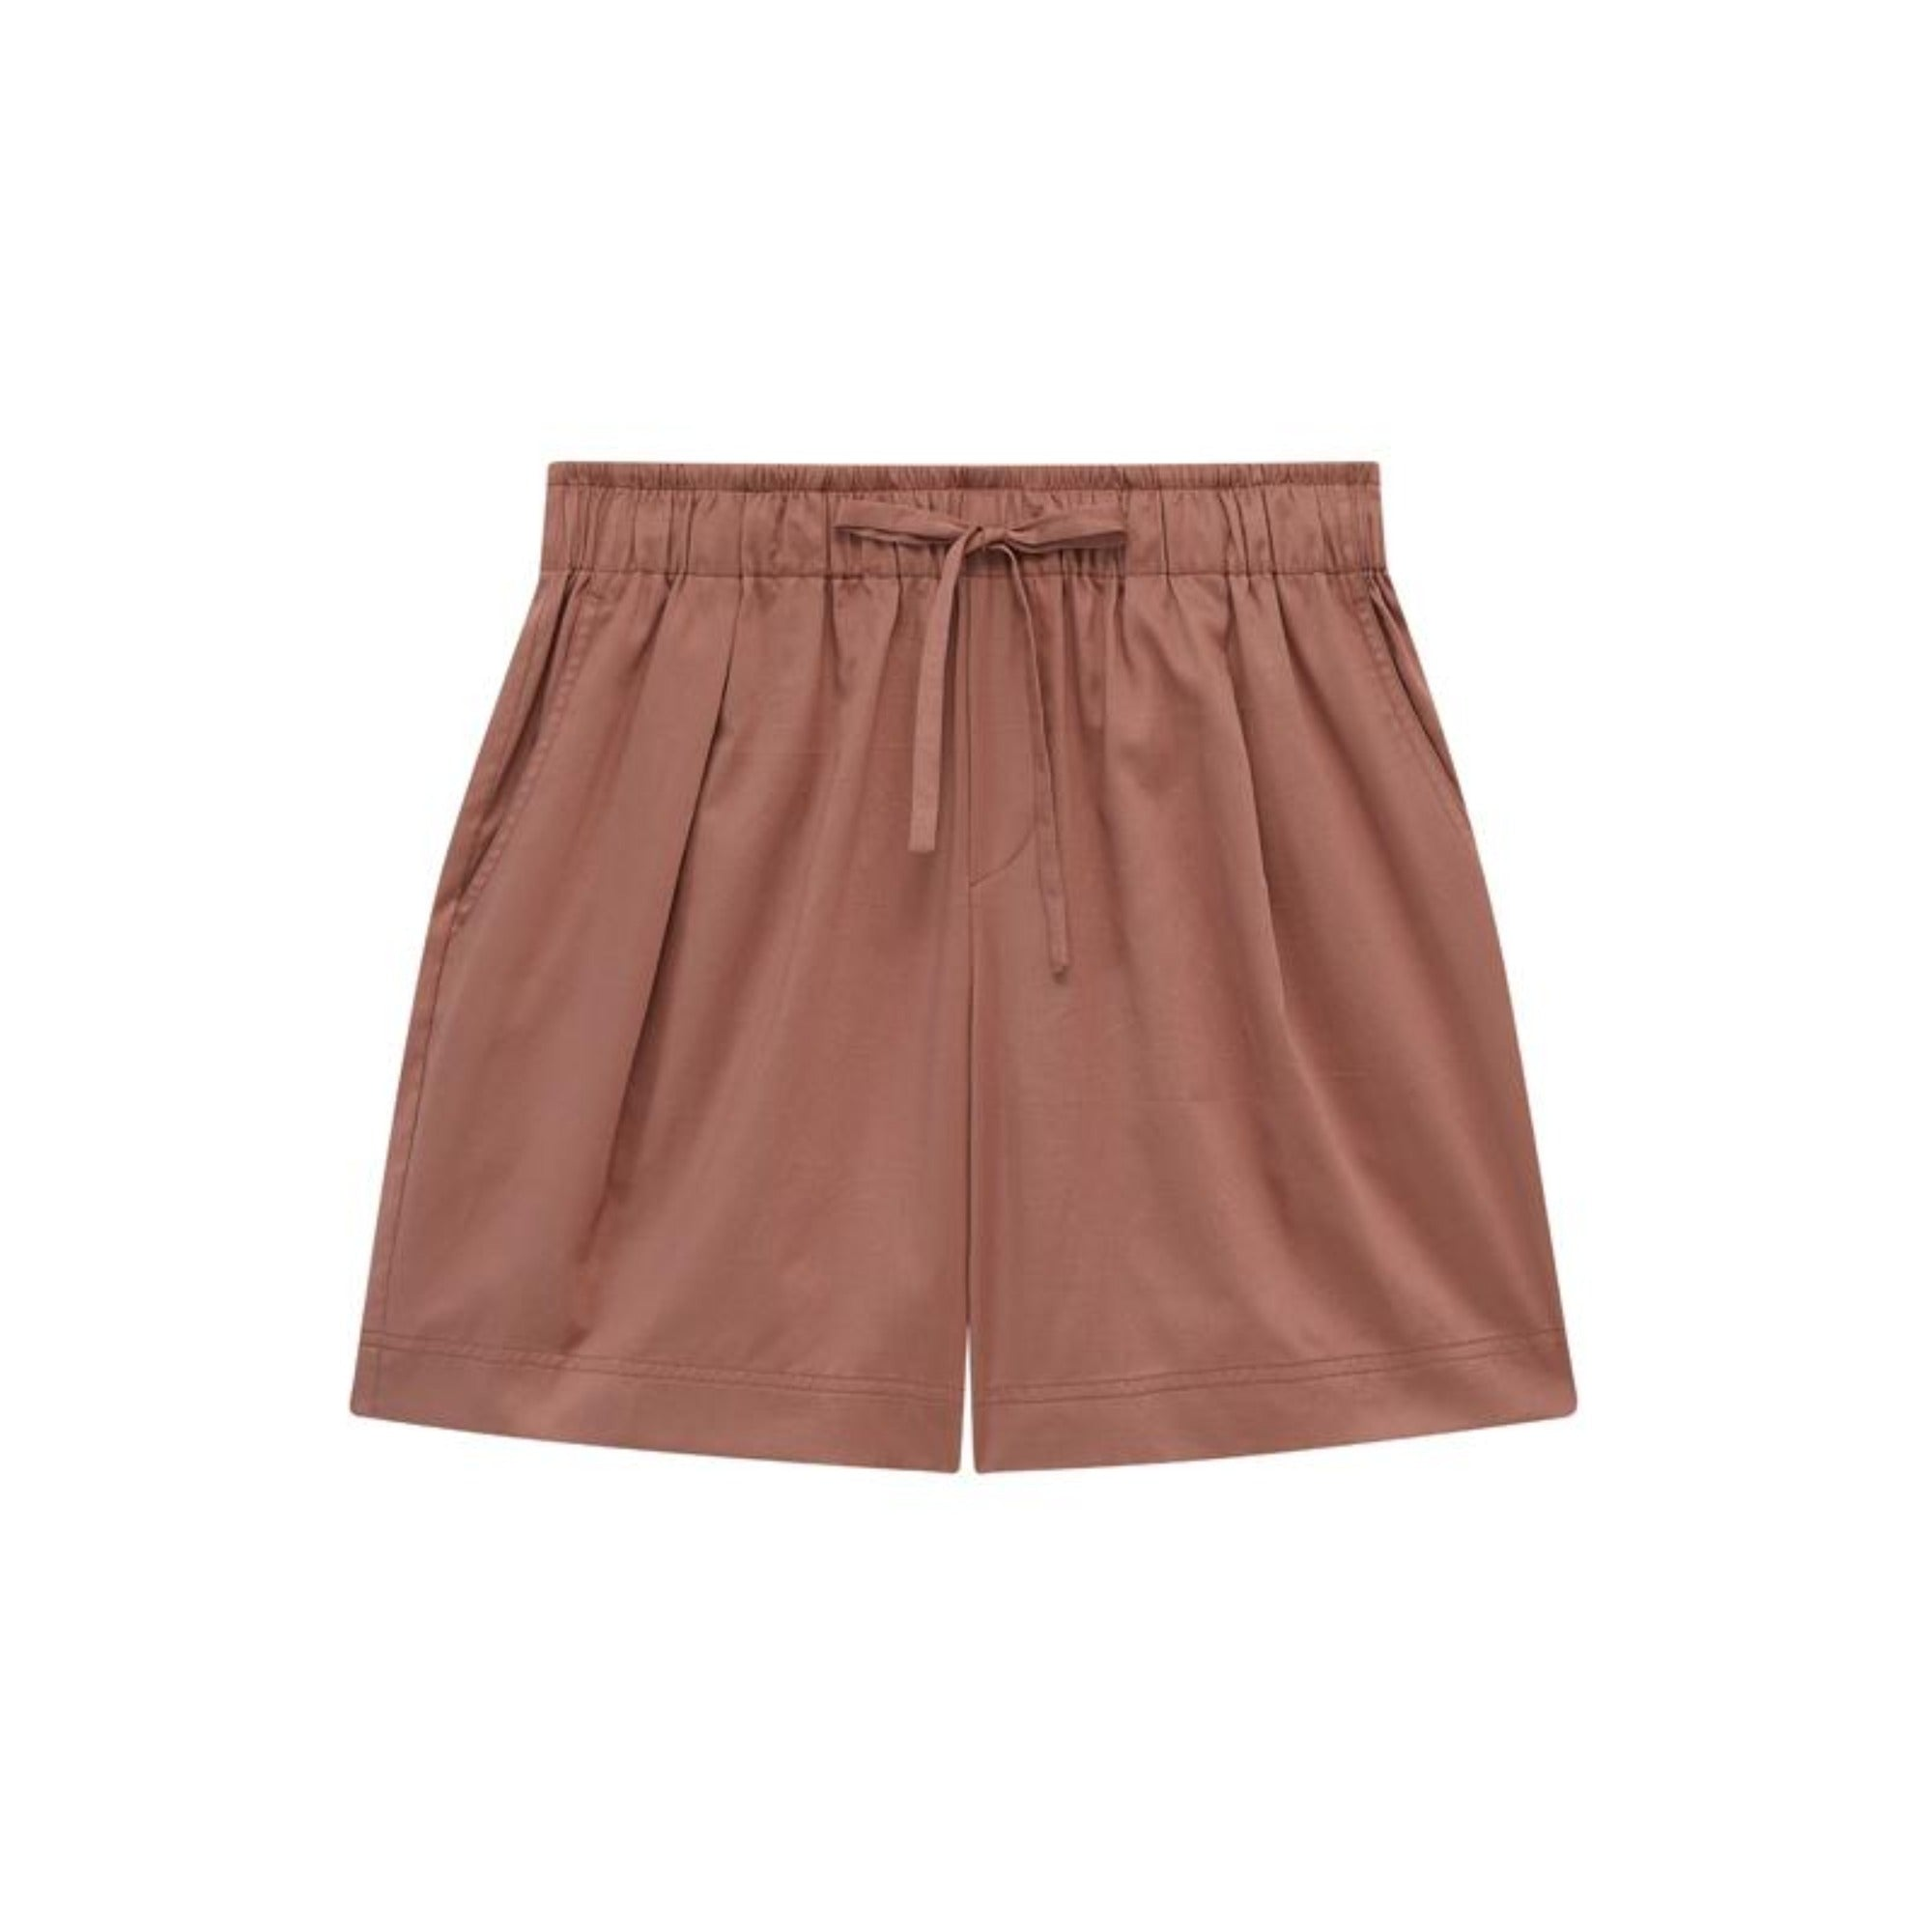 NEIWAI Cotton Sleep Shorts in Hazelnut